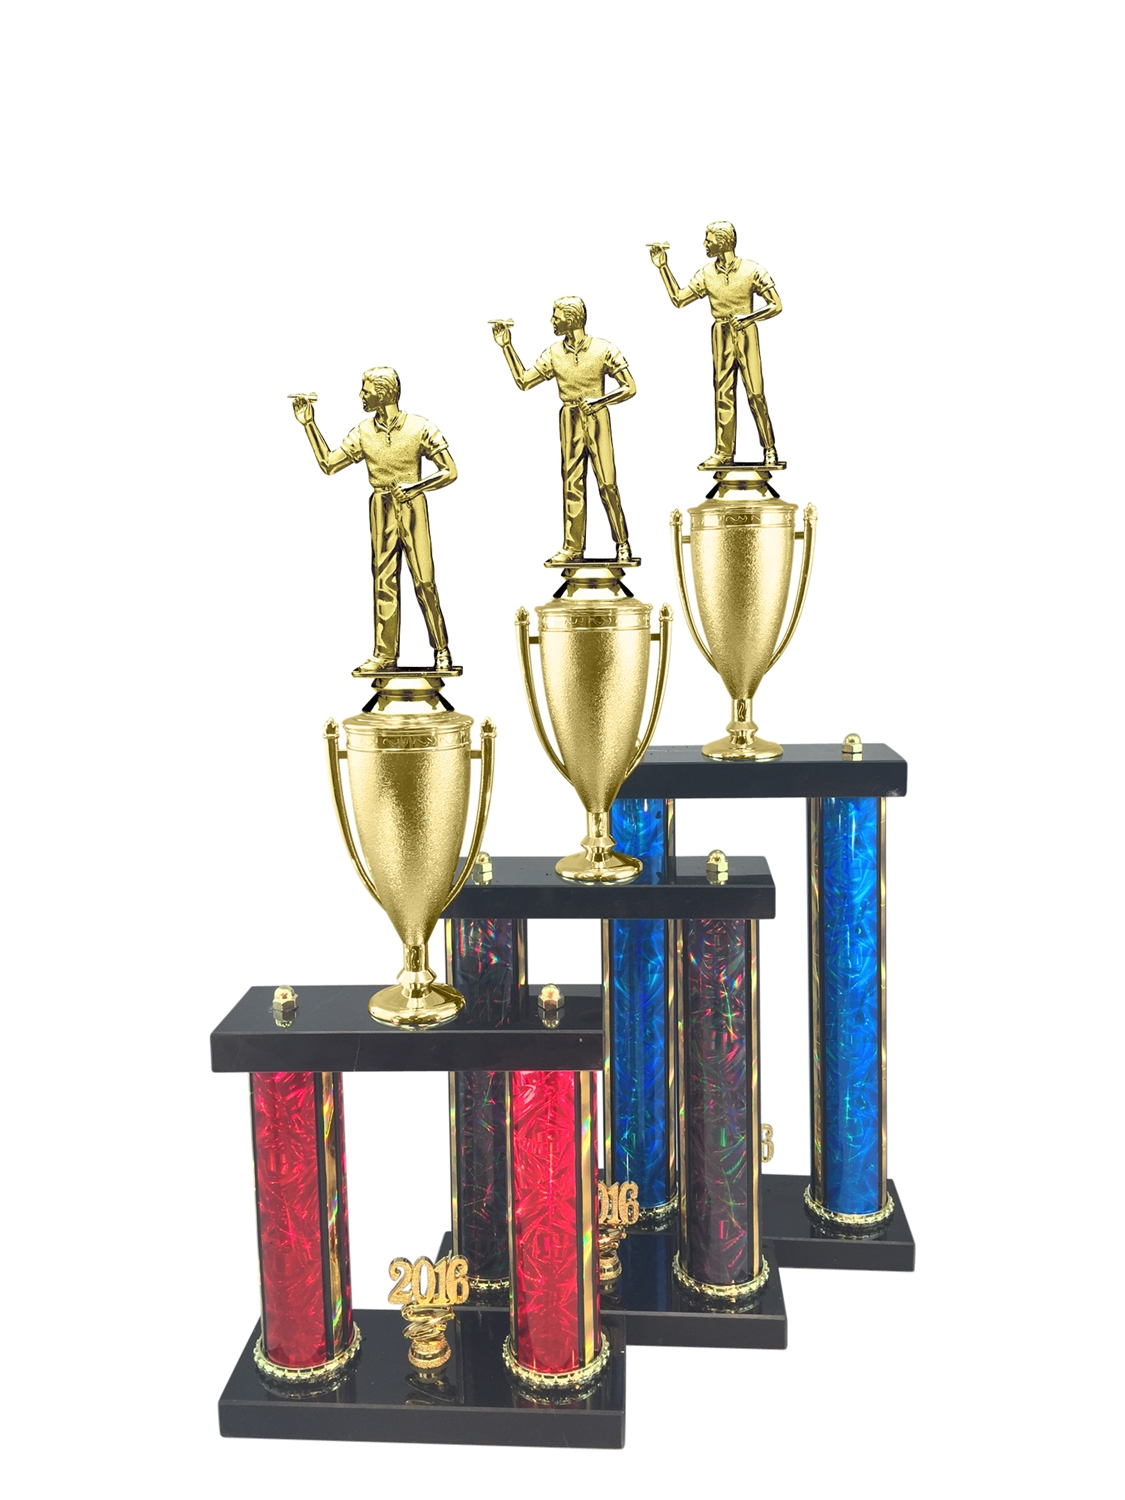 Male Darts Trophy Available in 11 Color & 3 Size Options